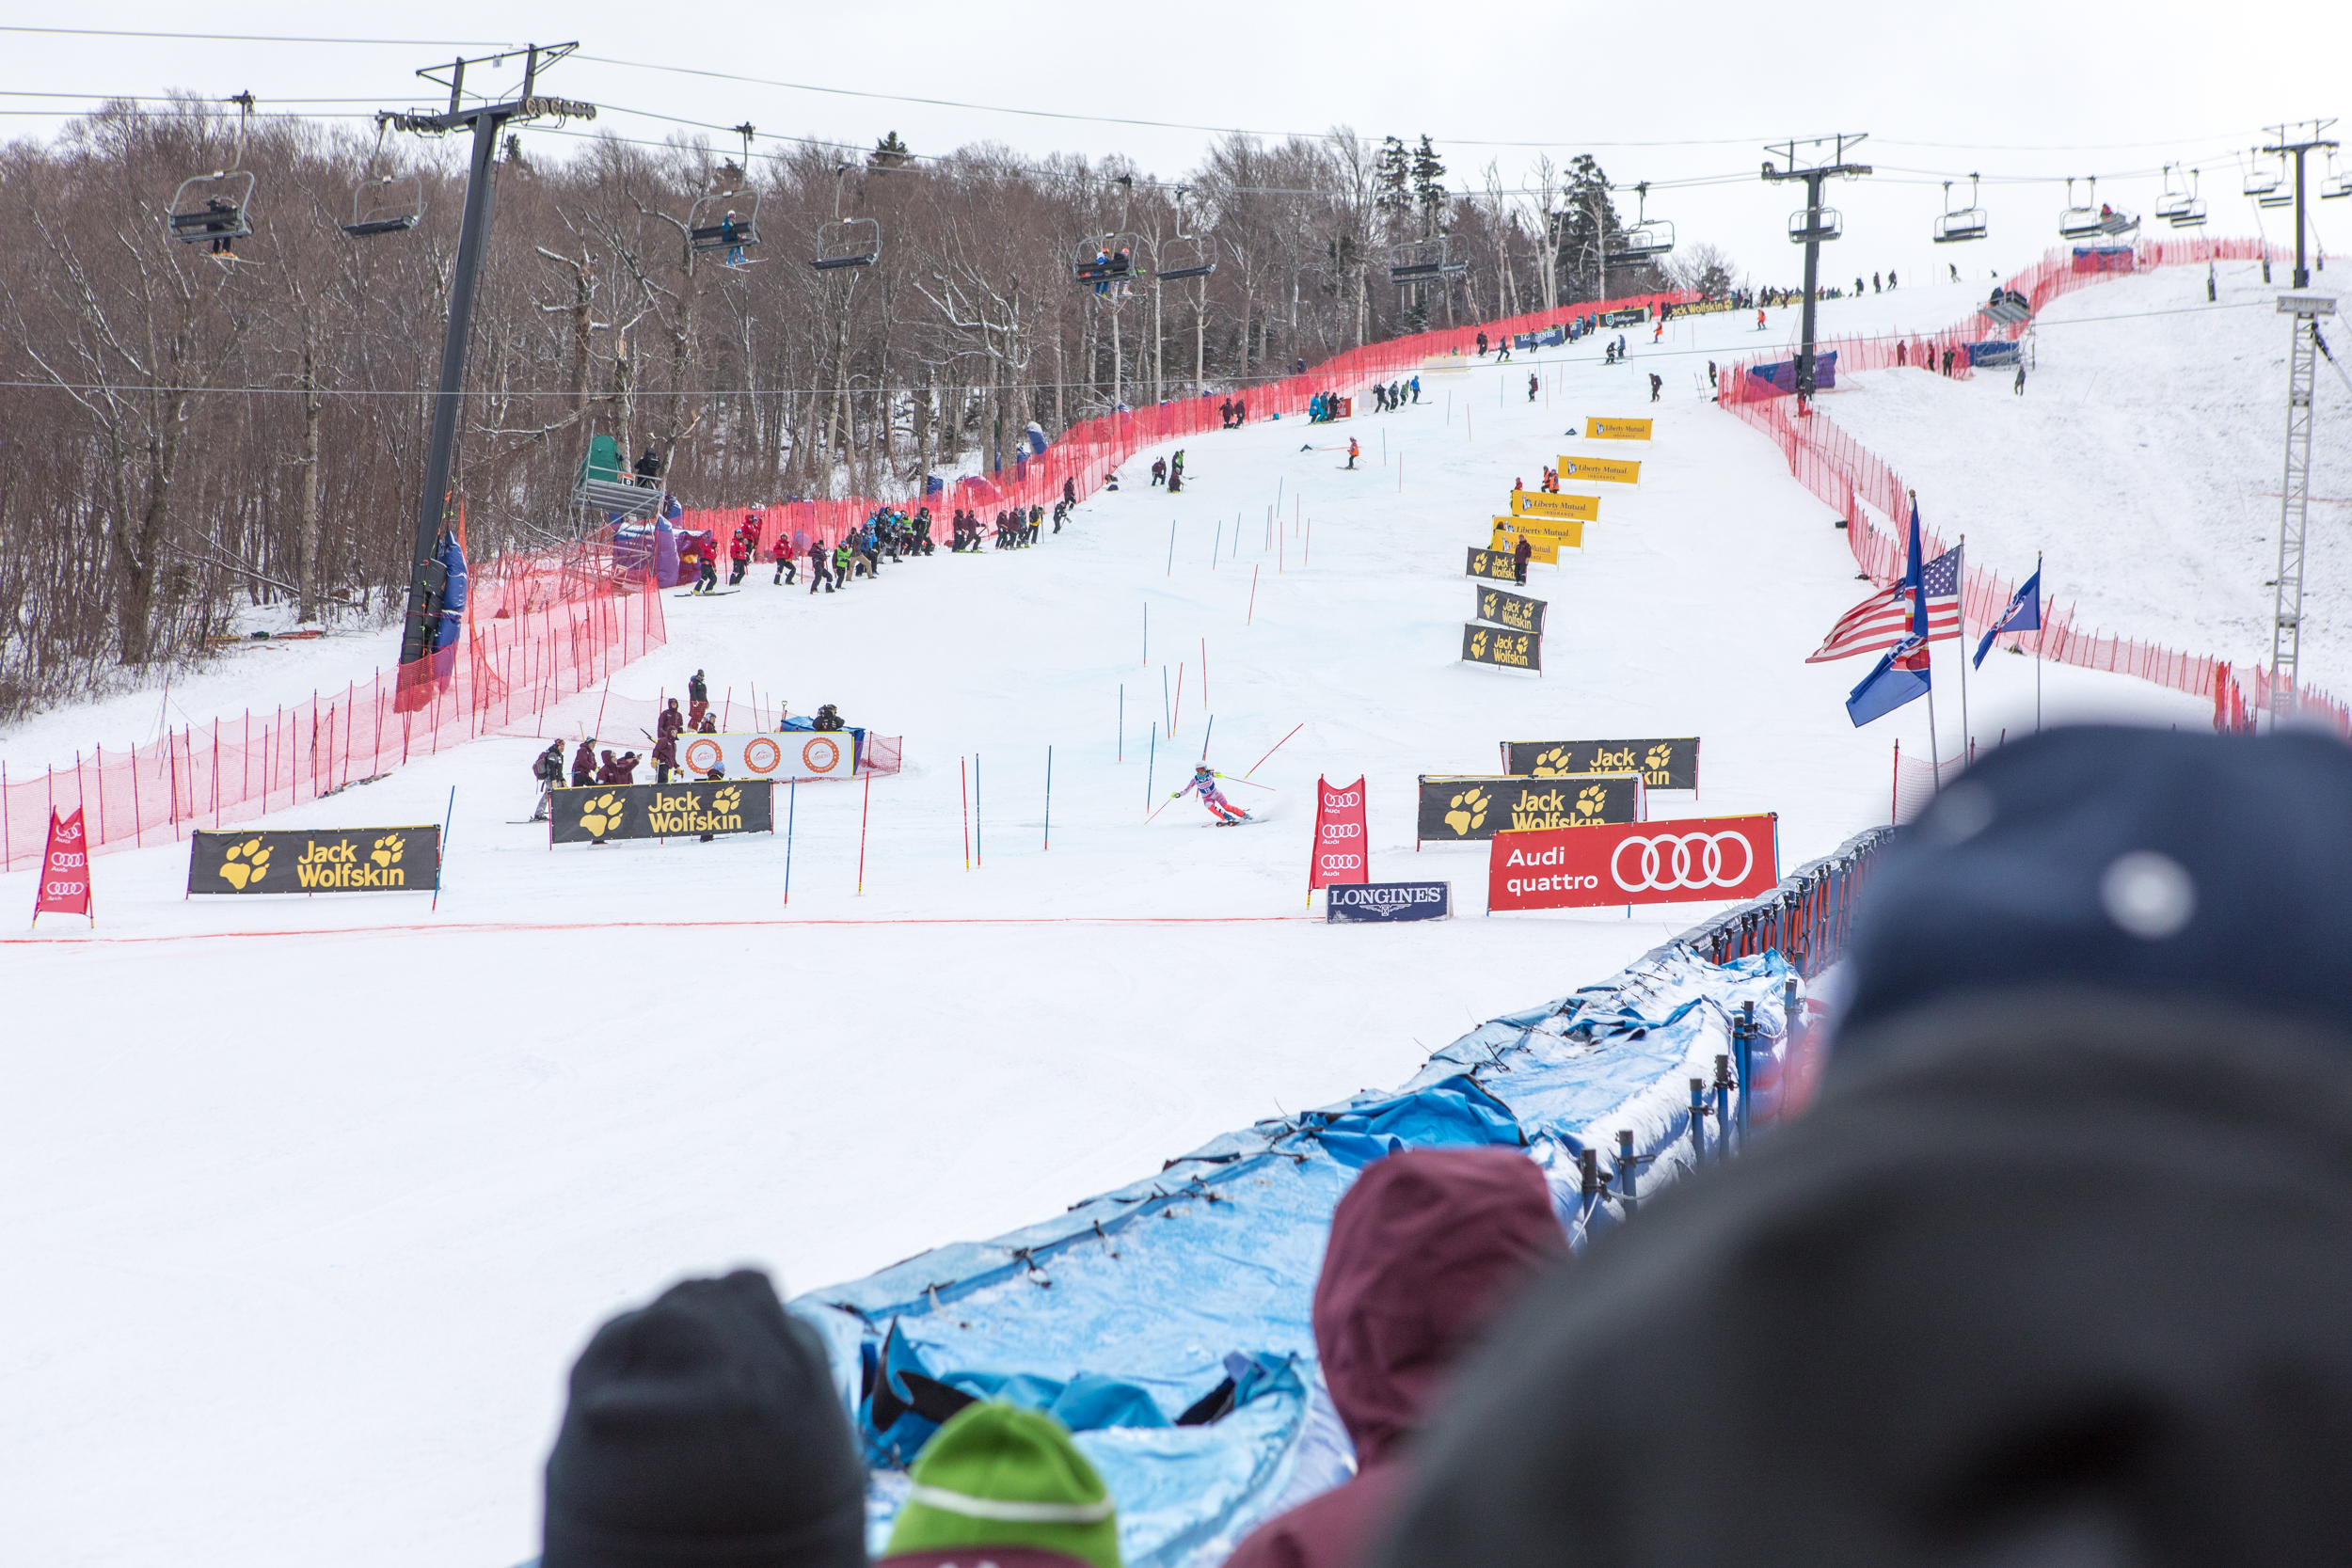 Killington-World-Cup-Resi-Stiegler.jpg